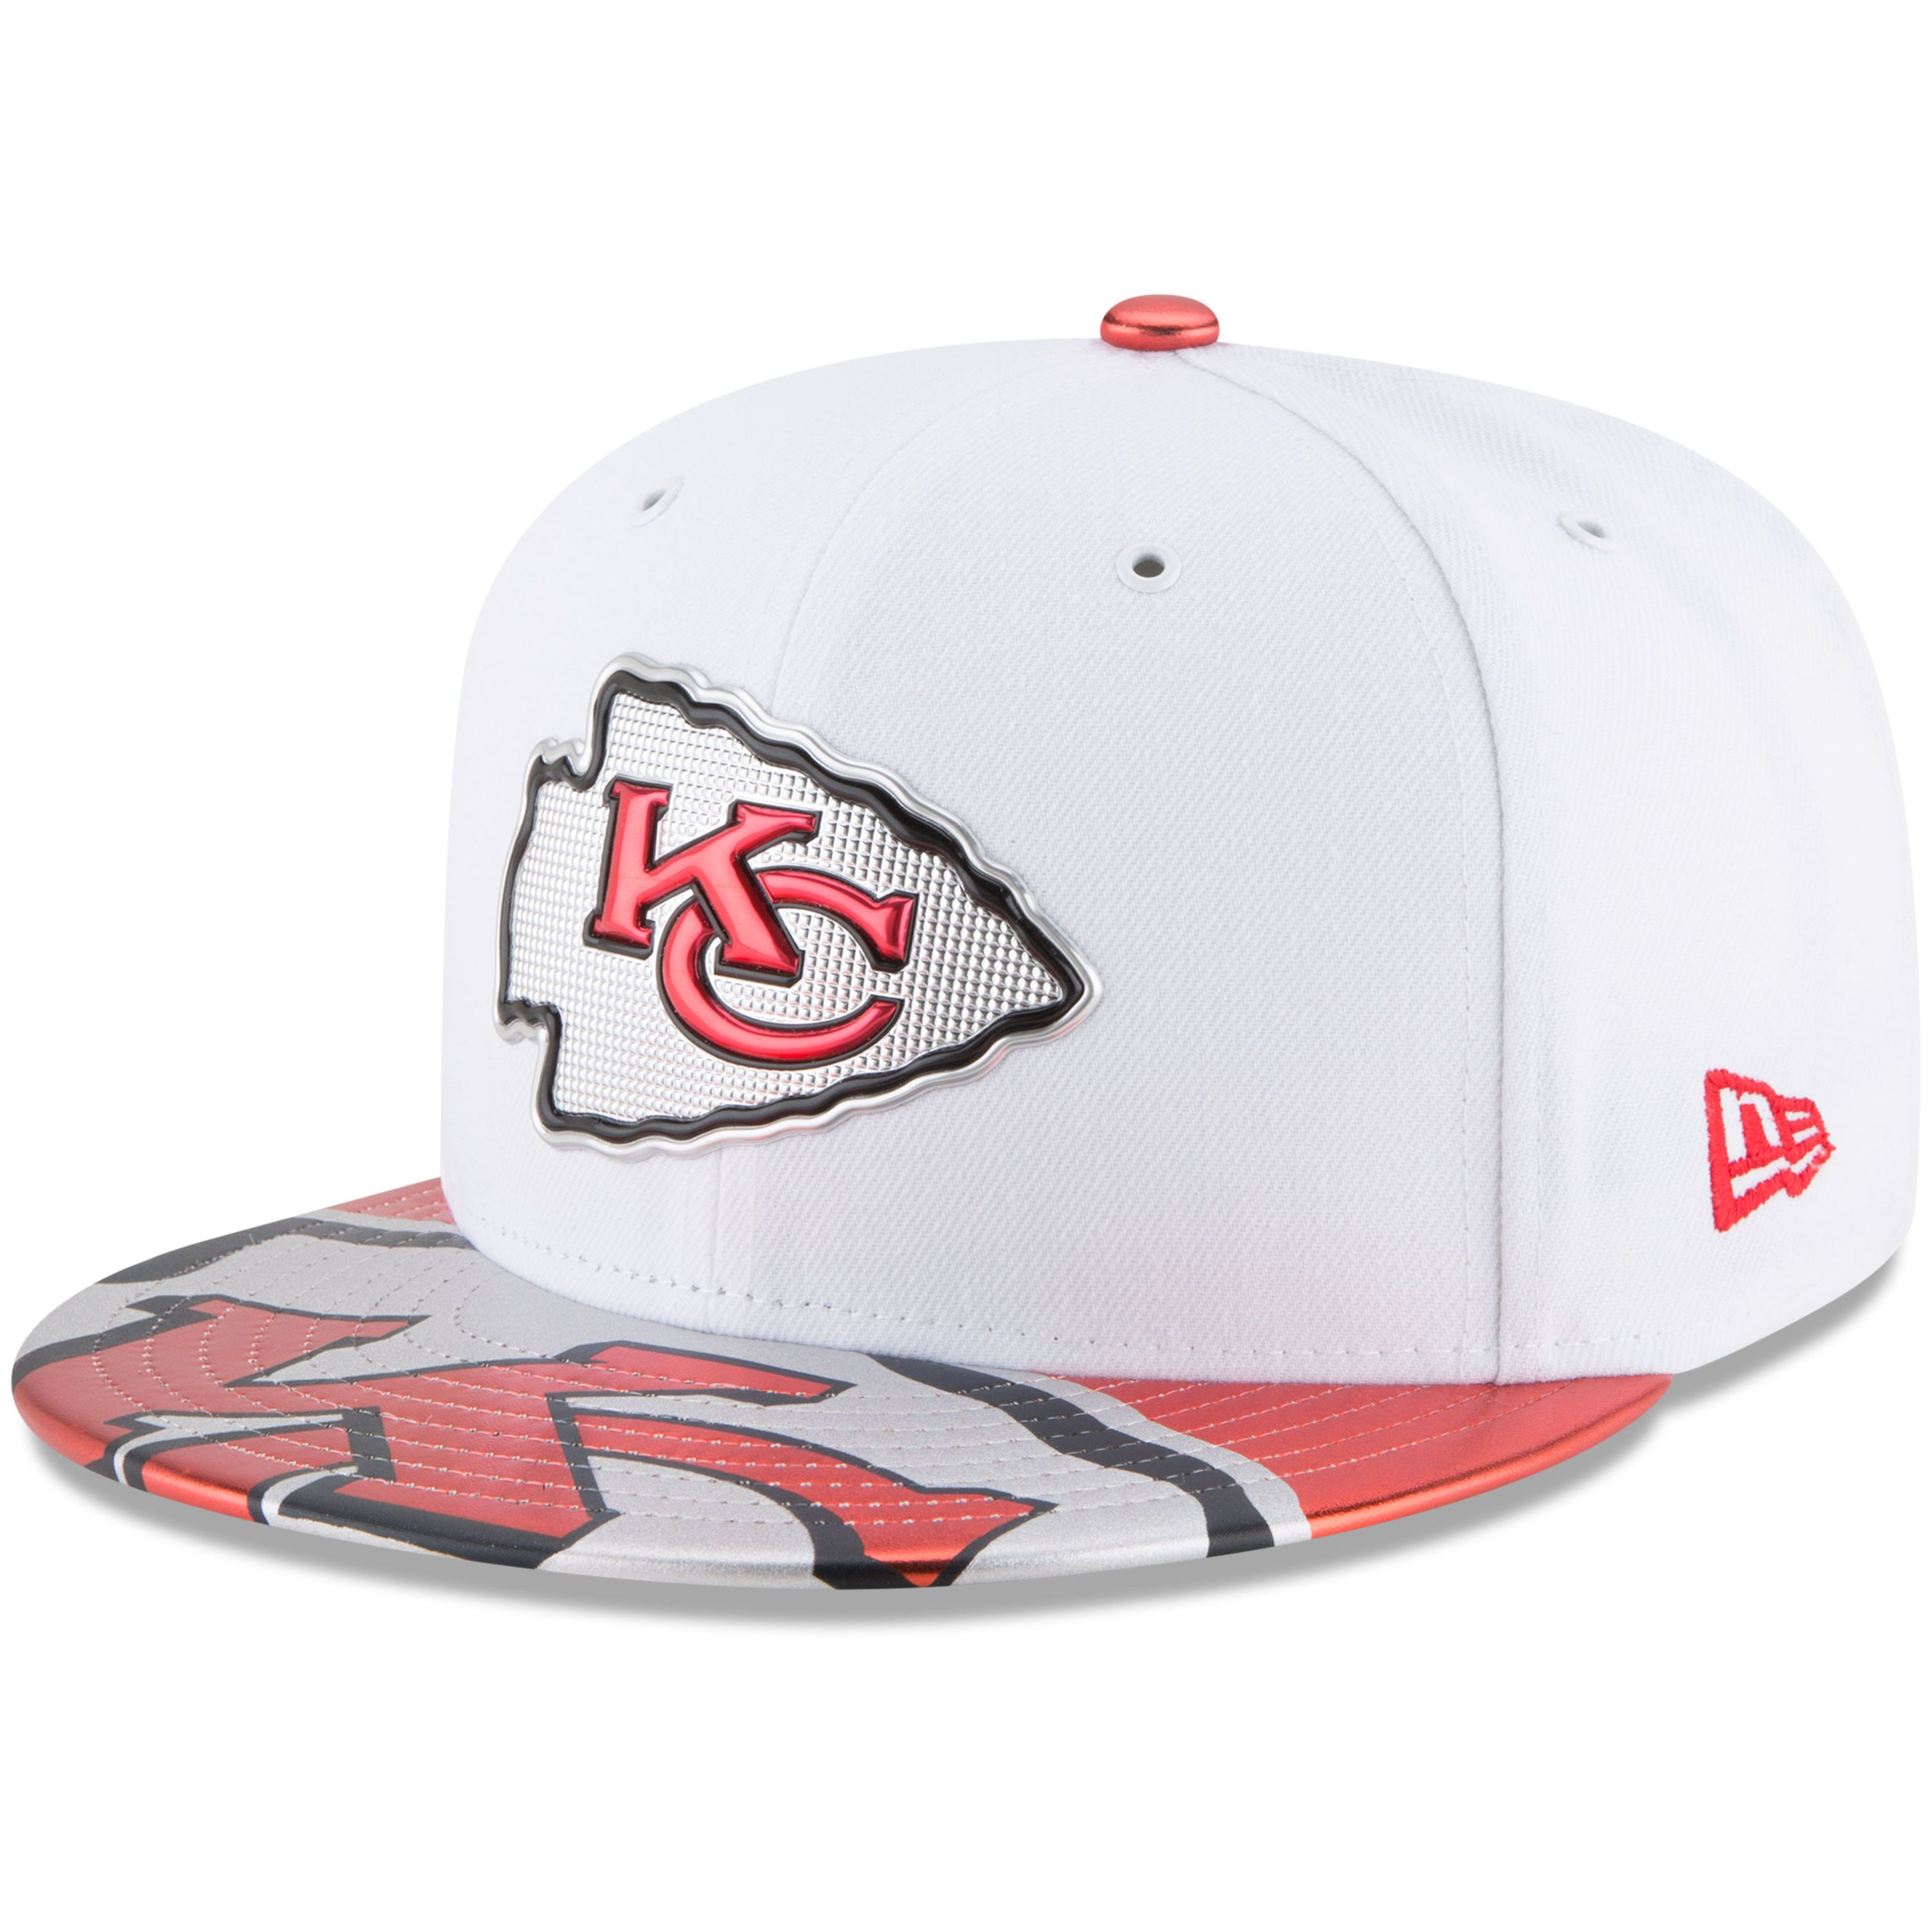 a04462c8e Men s Kansas City Chiefs New Era White 2017 NFL Draft Official On Stage  59FIFTY Fitted Hat